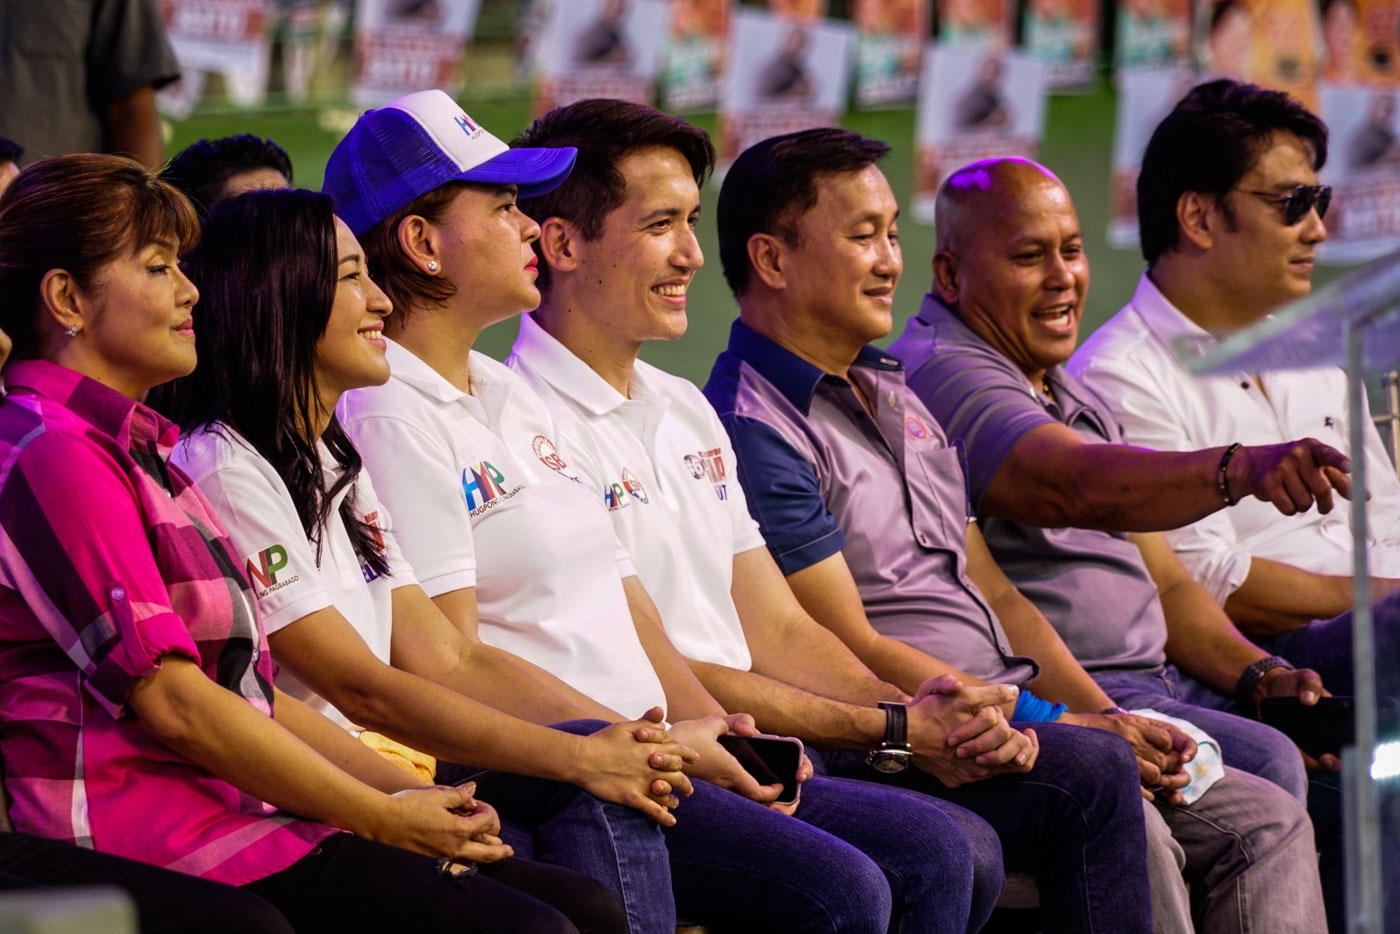 QC RACE. Sara Duterte sits between Quezon City mayoral candidate Joy Belmonte and vice-mayoral candidate Gian Sotto. Photo by Maria Tan/Rappler